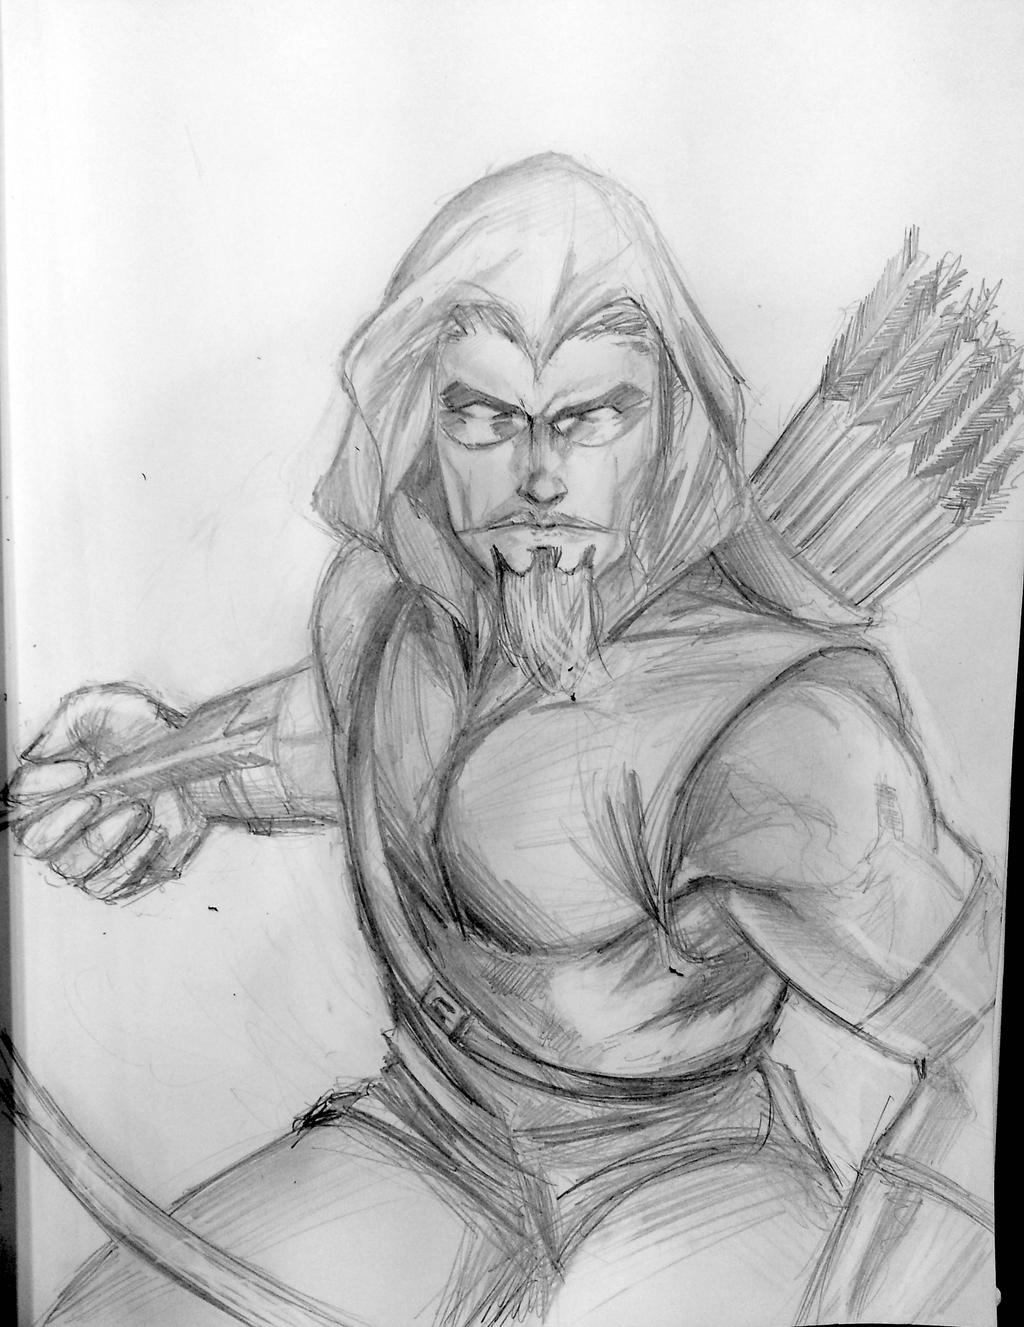 Green Arrow Sketch By Csyeung On DeviantArt